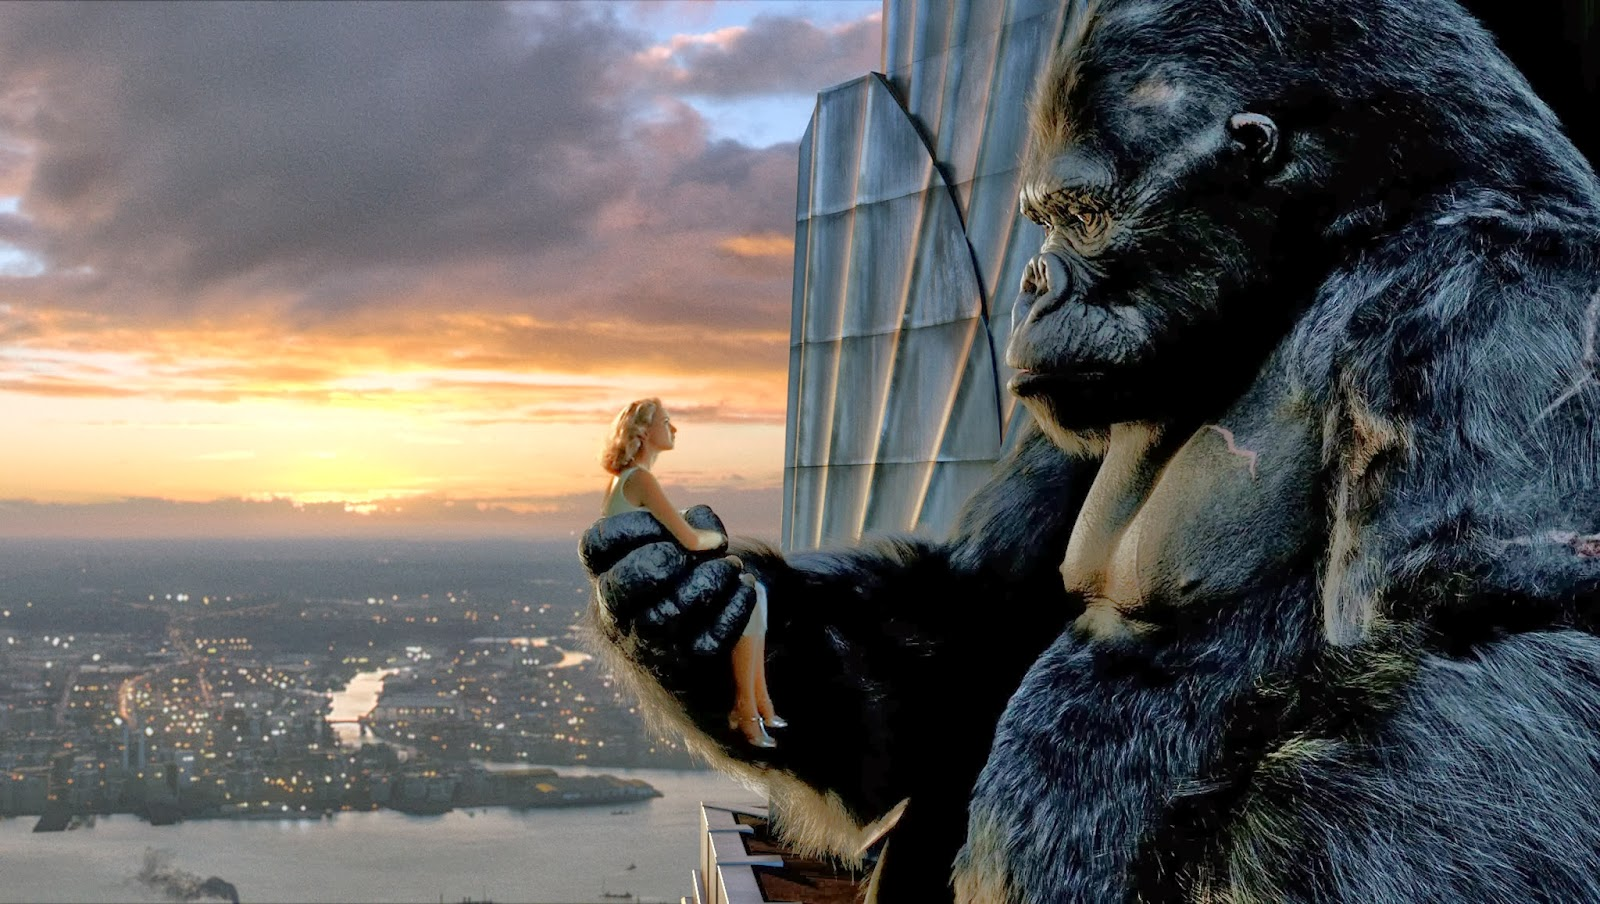 Peter Jackson's King Kong Was A Beautiful, Messy Tragedy | Den of Geek